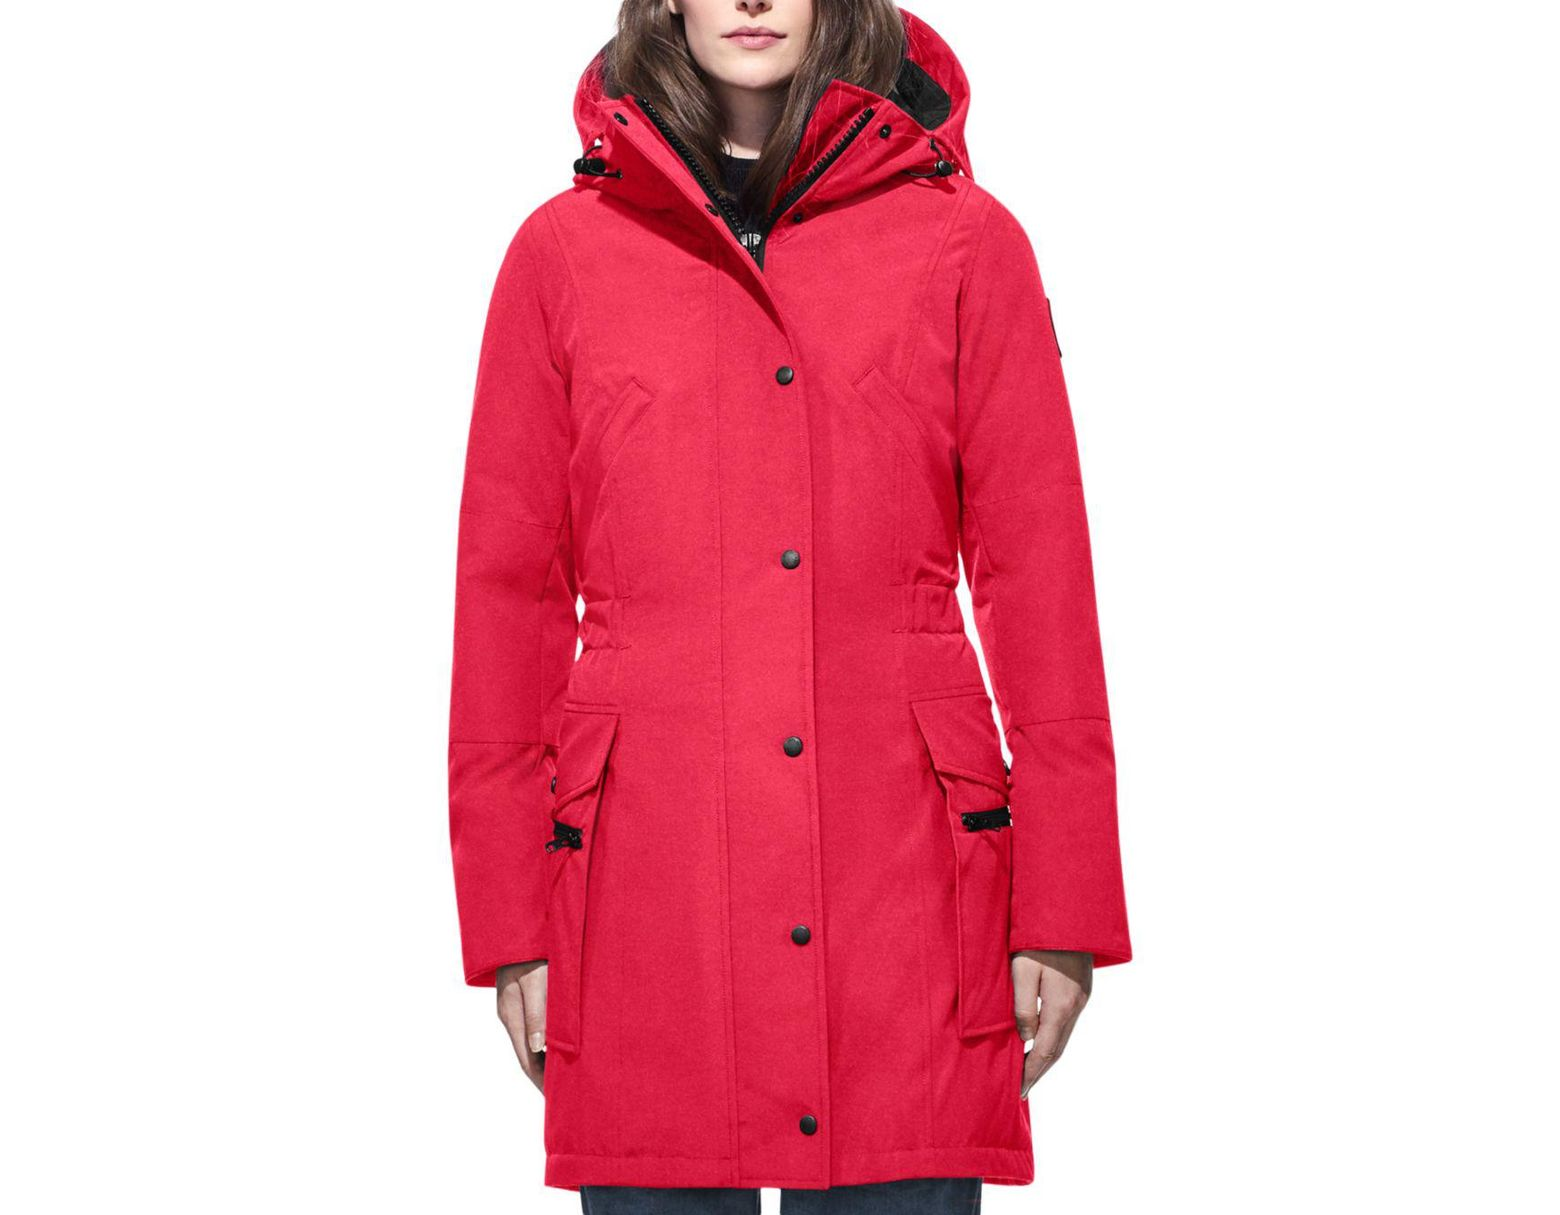 0e9d9a96c12 Canada Goose Kinley Down Parka in Red - Lyst